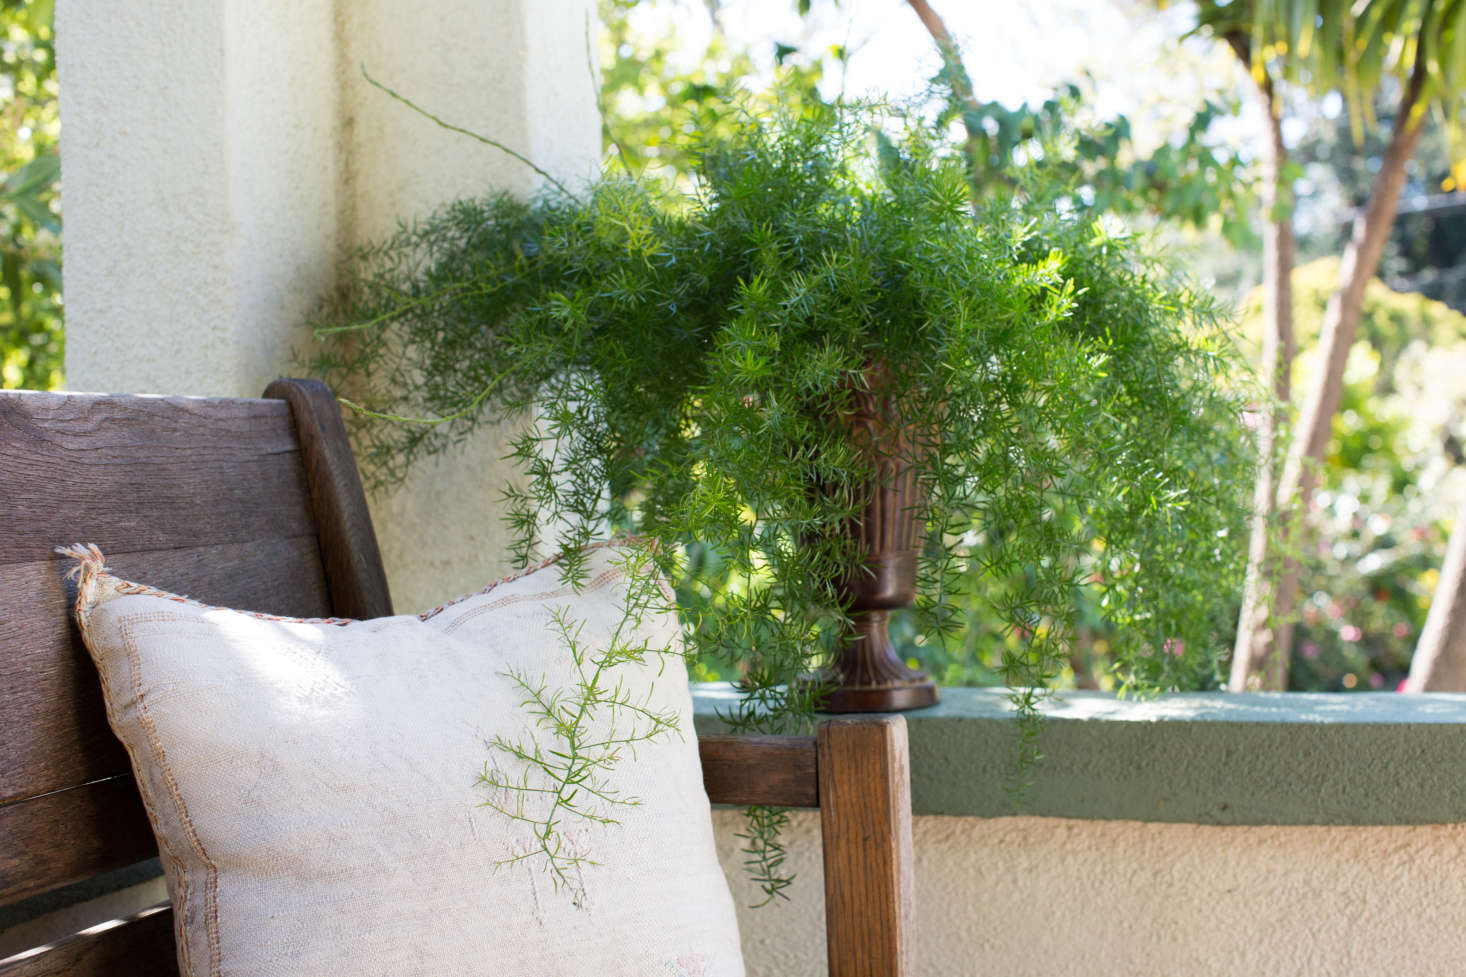 An asparagus fern enjoys dappled light on a front porch. See more growing tips in Asparagus Ferns: A Field Guide to Planting, Care & Design.